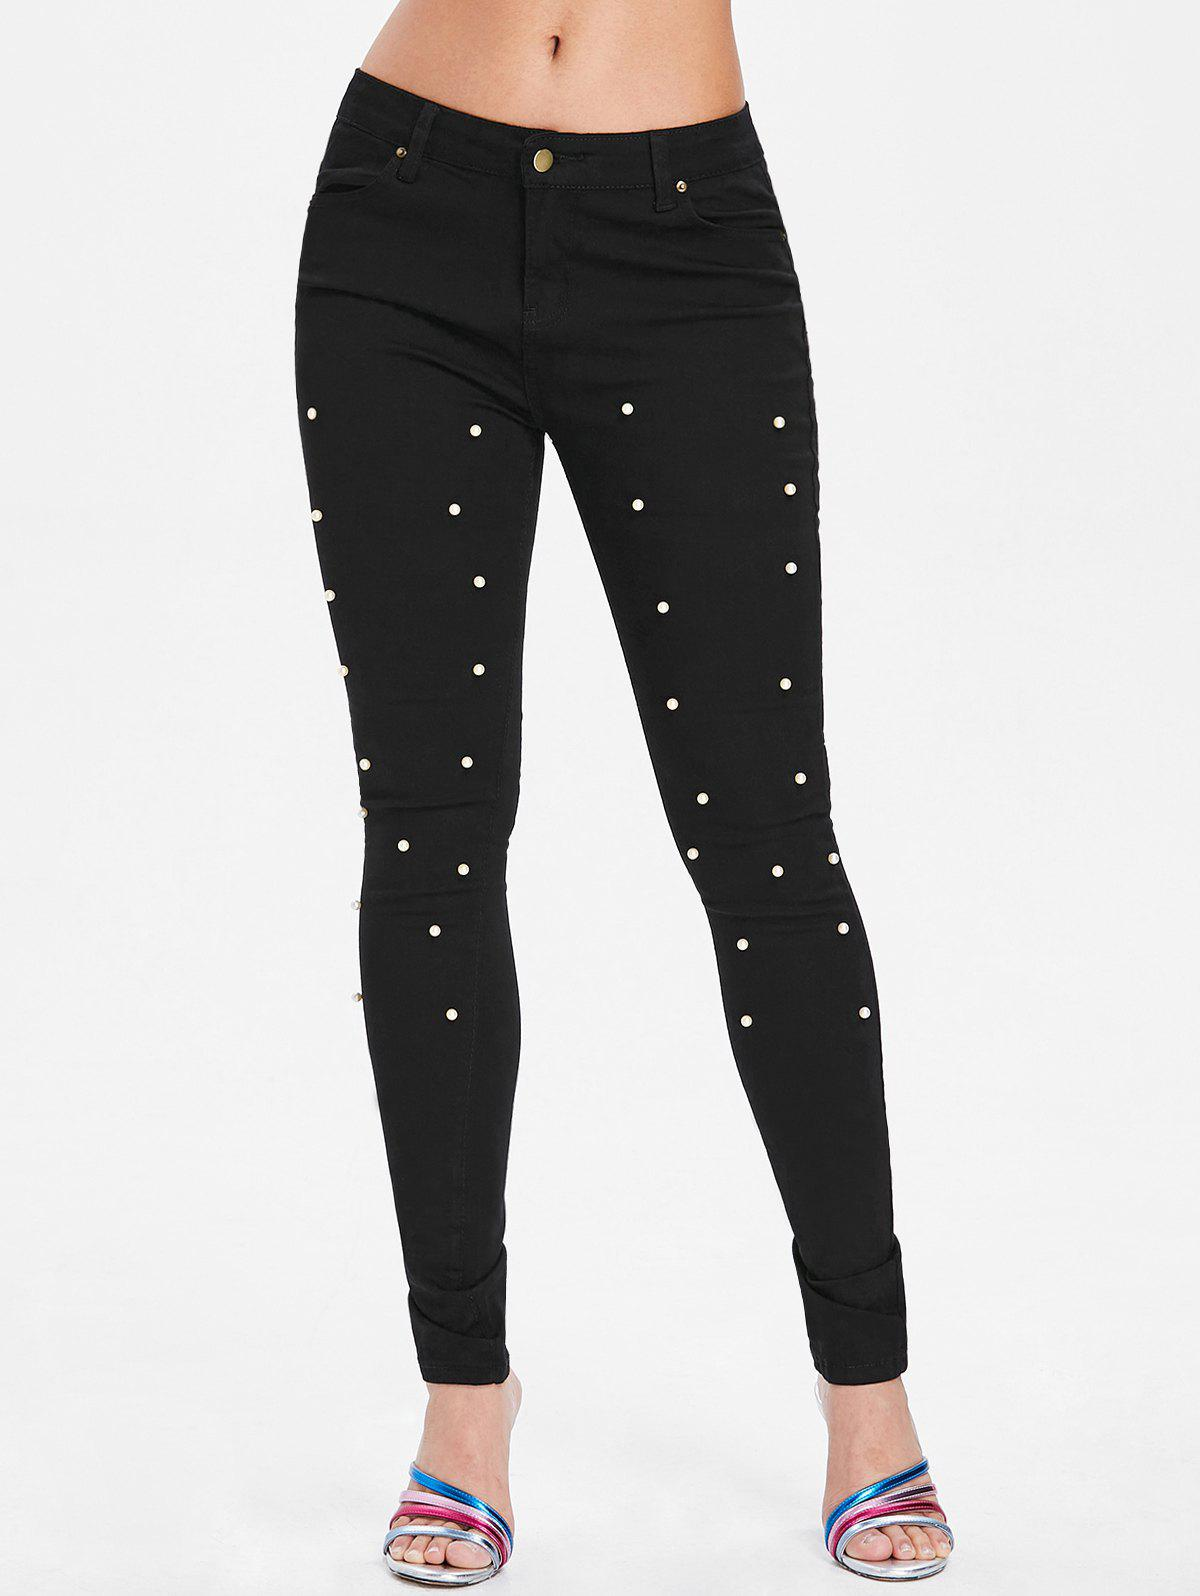 Pantalon Moulant en Perles Fantaisies